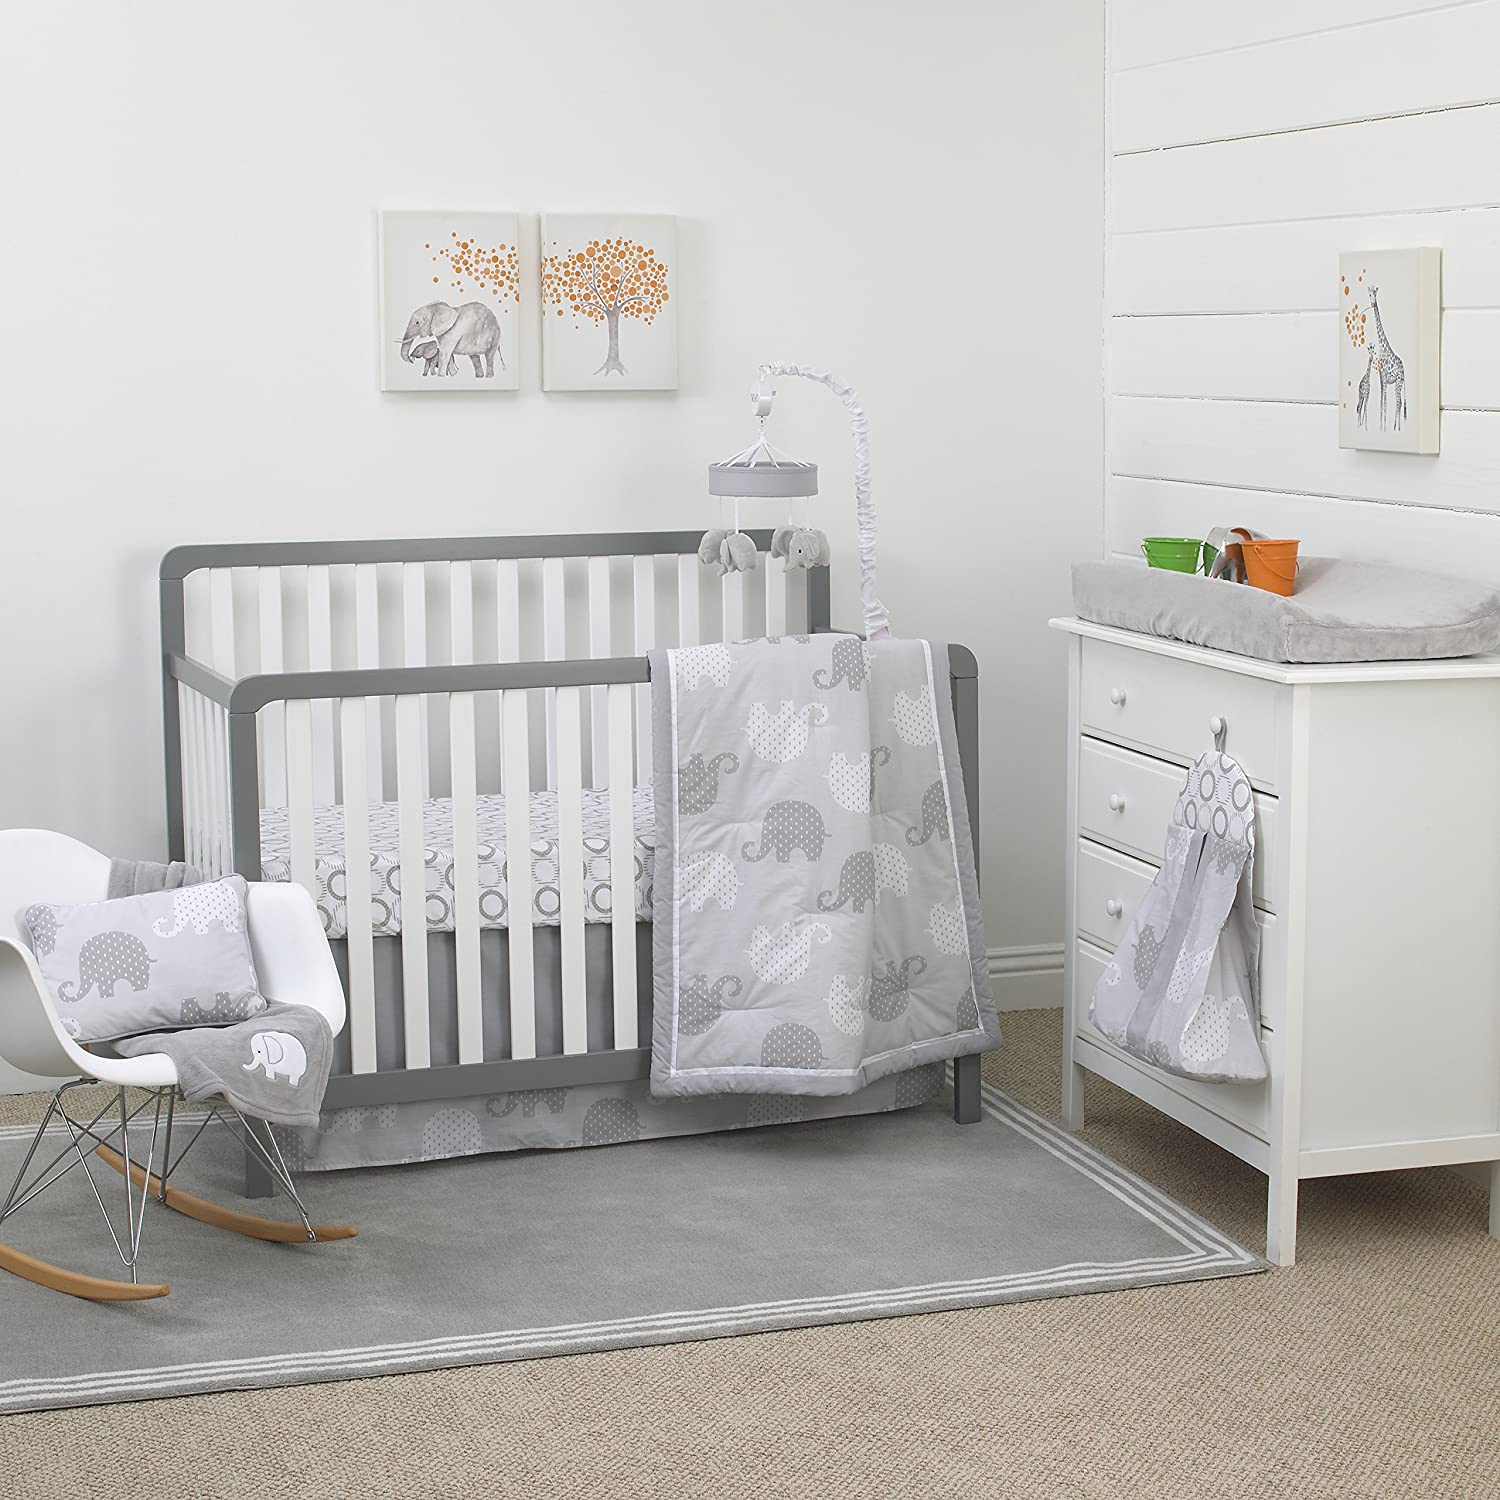 NoJo Elephant 8-Piece Nursery Crib Bedding Set, Grey/White/Charcoal